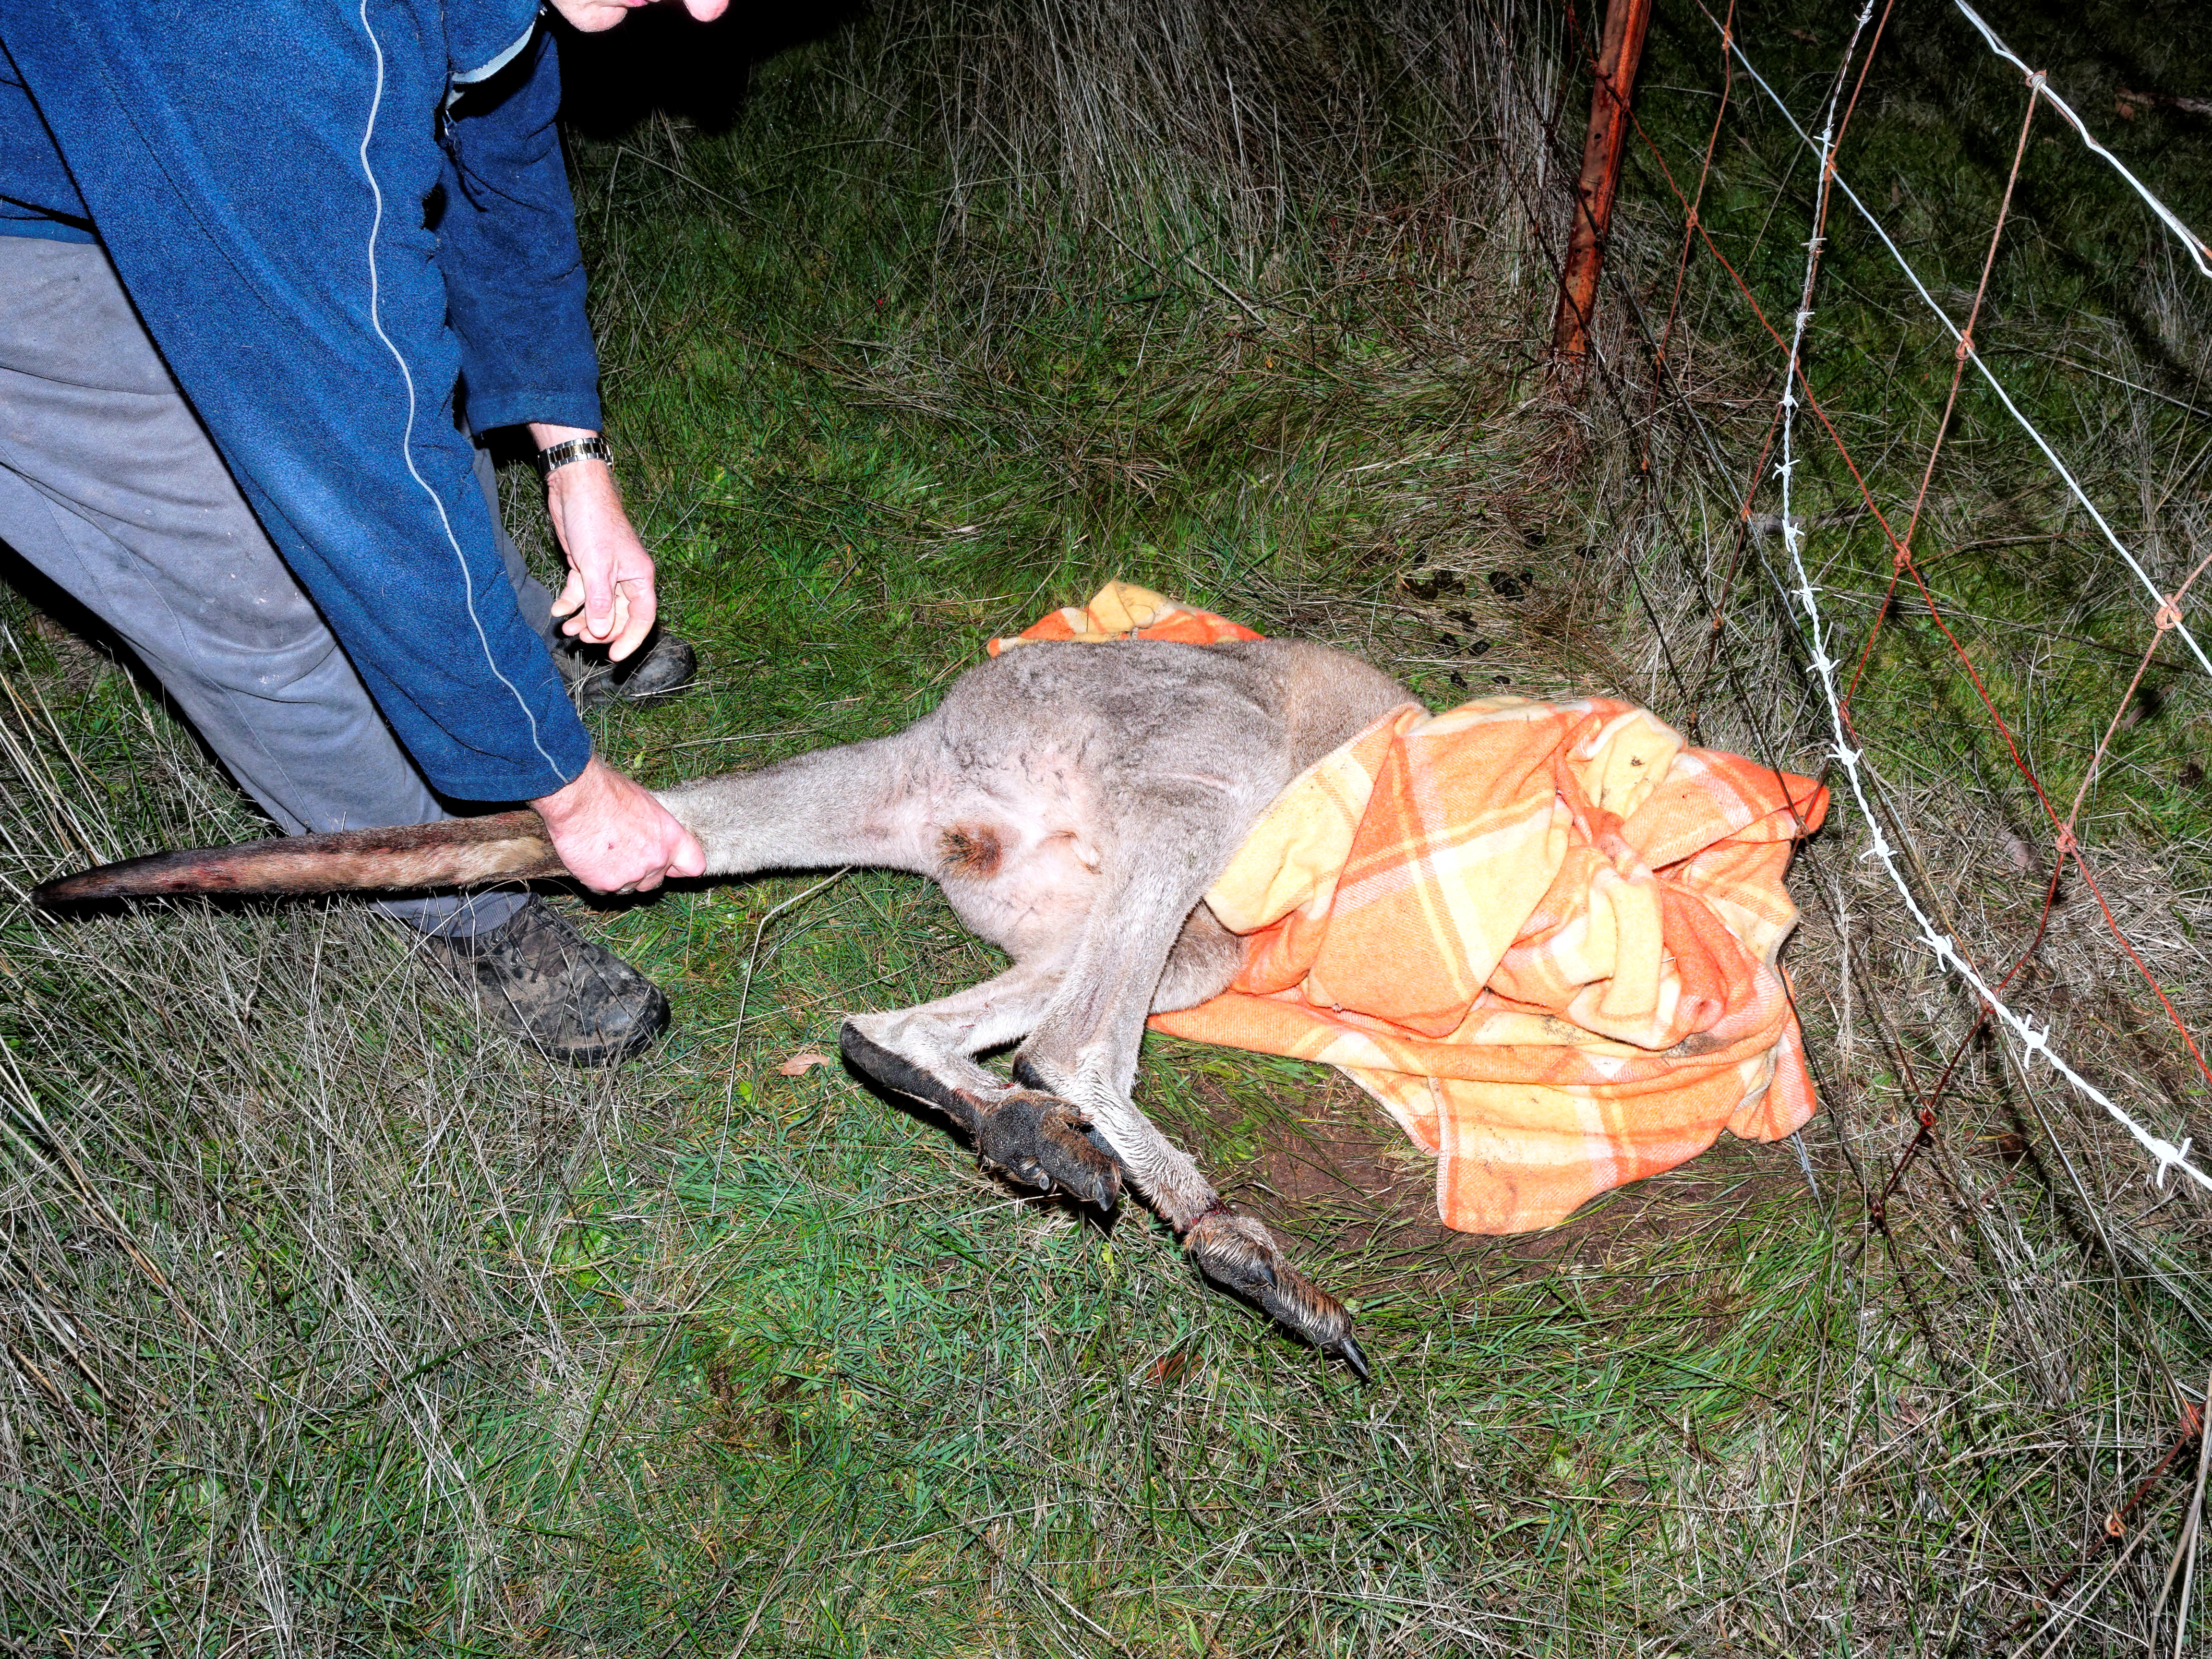 This should be Trapped-kangaroo-11.jpeg.  Is it missing?